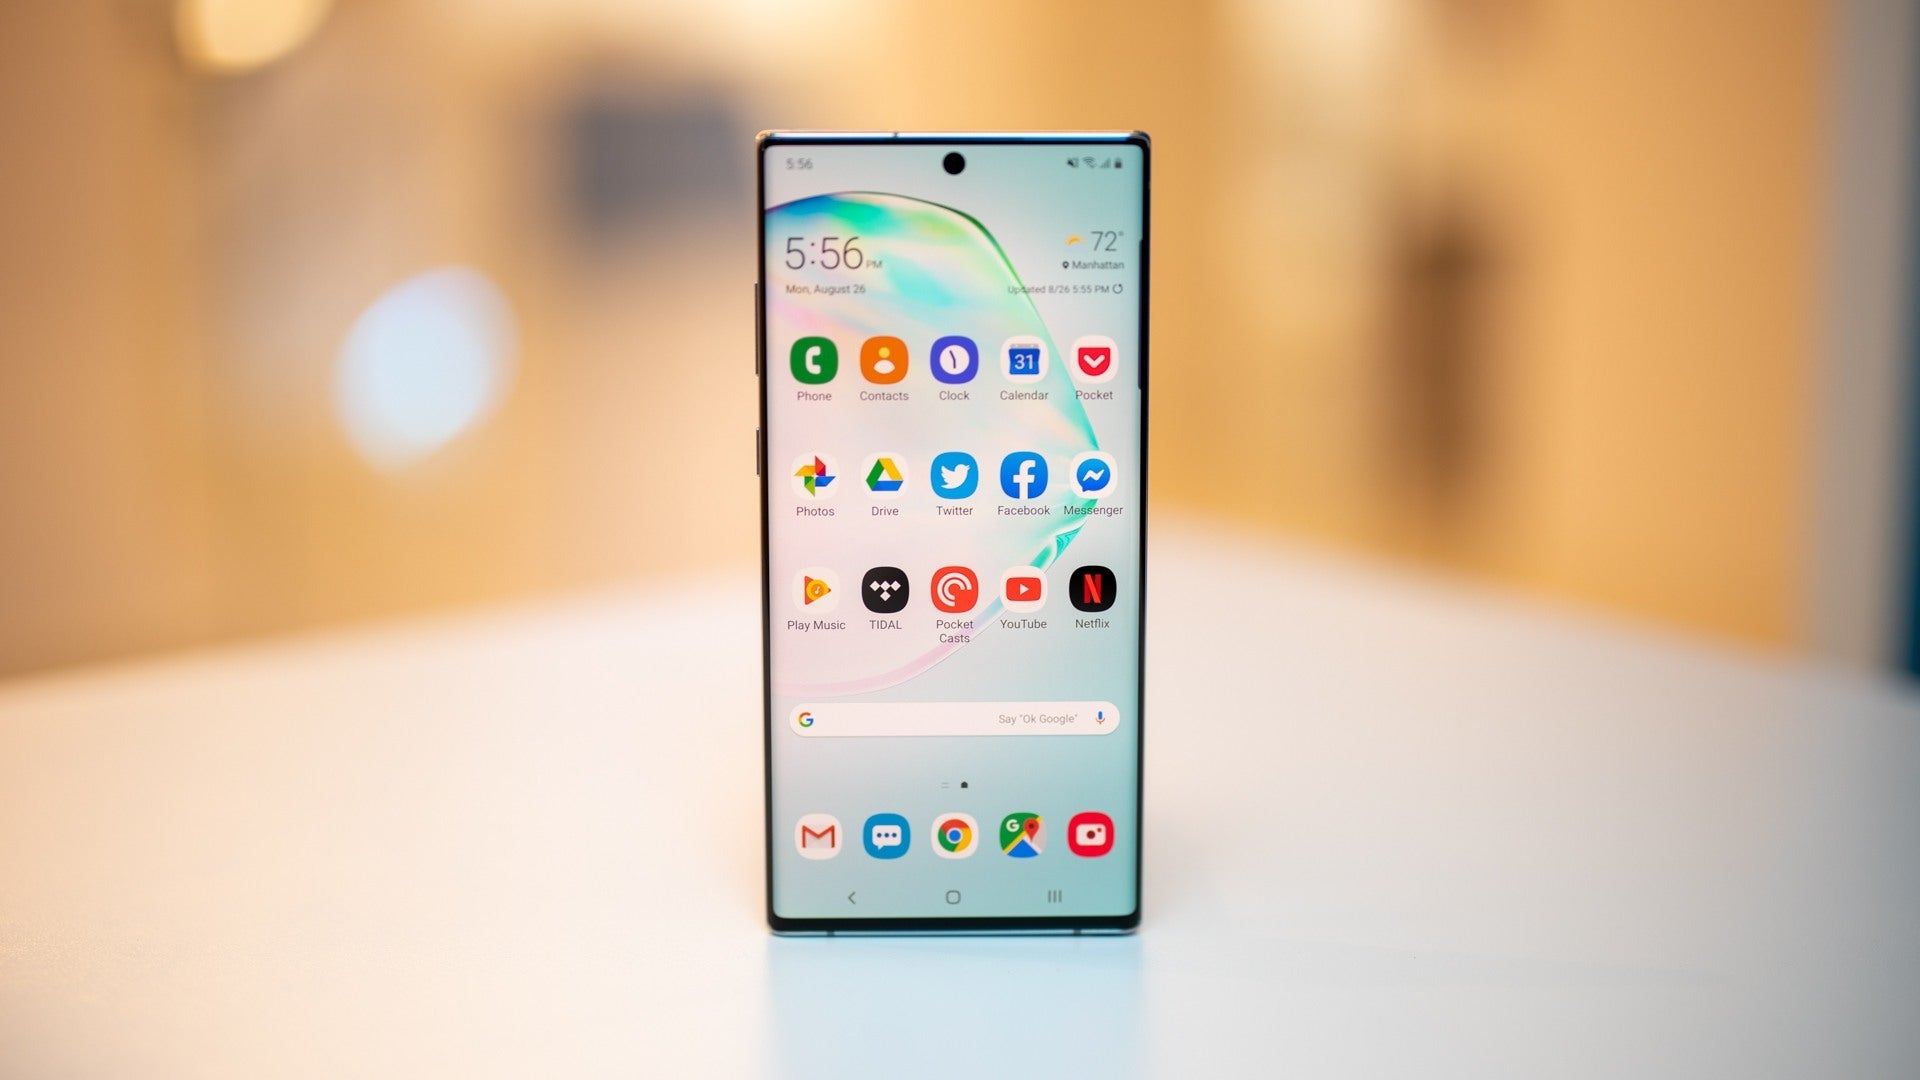 4. Samsung Galaxy Note 10+ 5G – The Best Premium 5G Phone of 2020